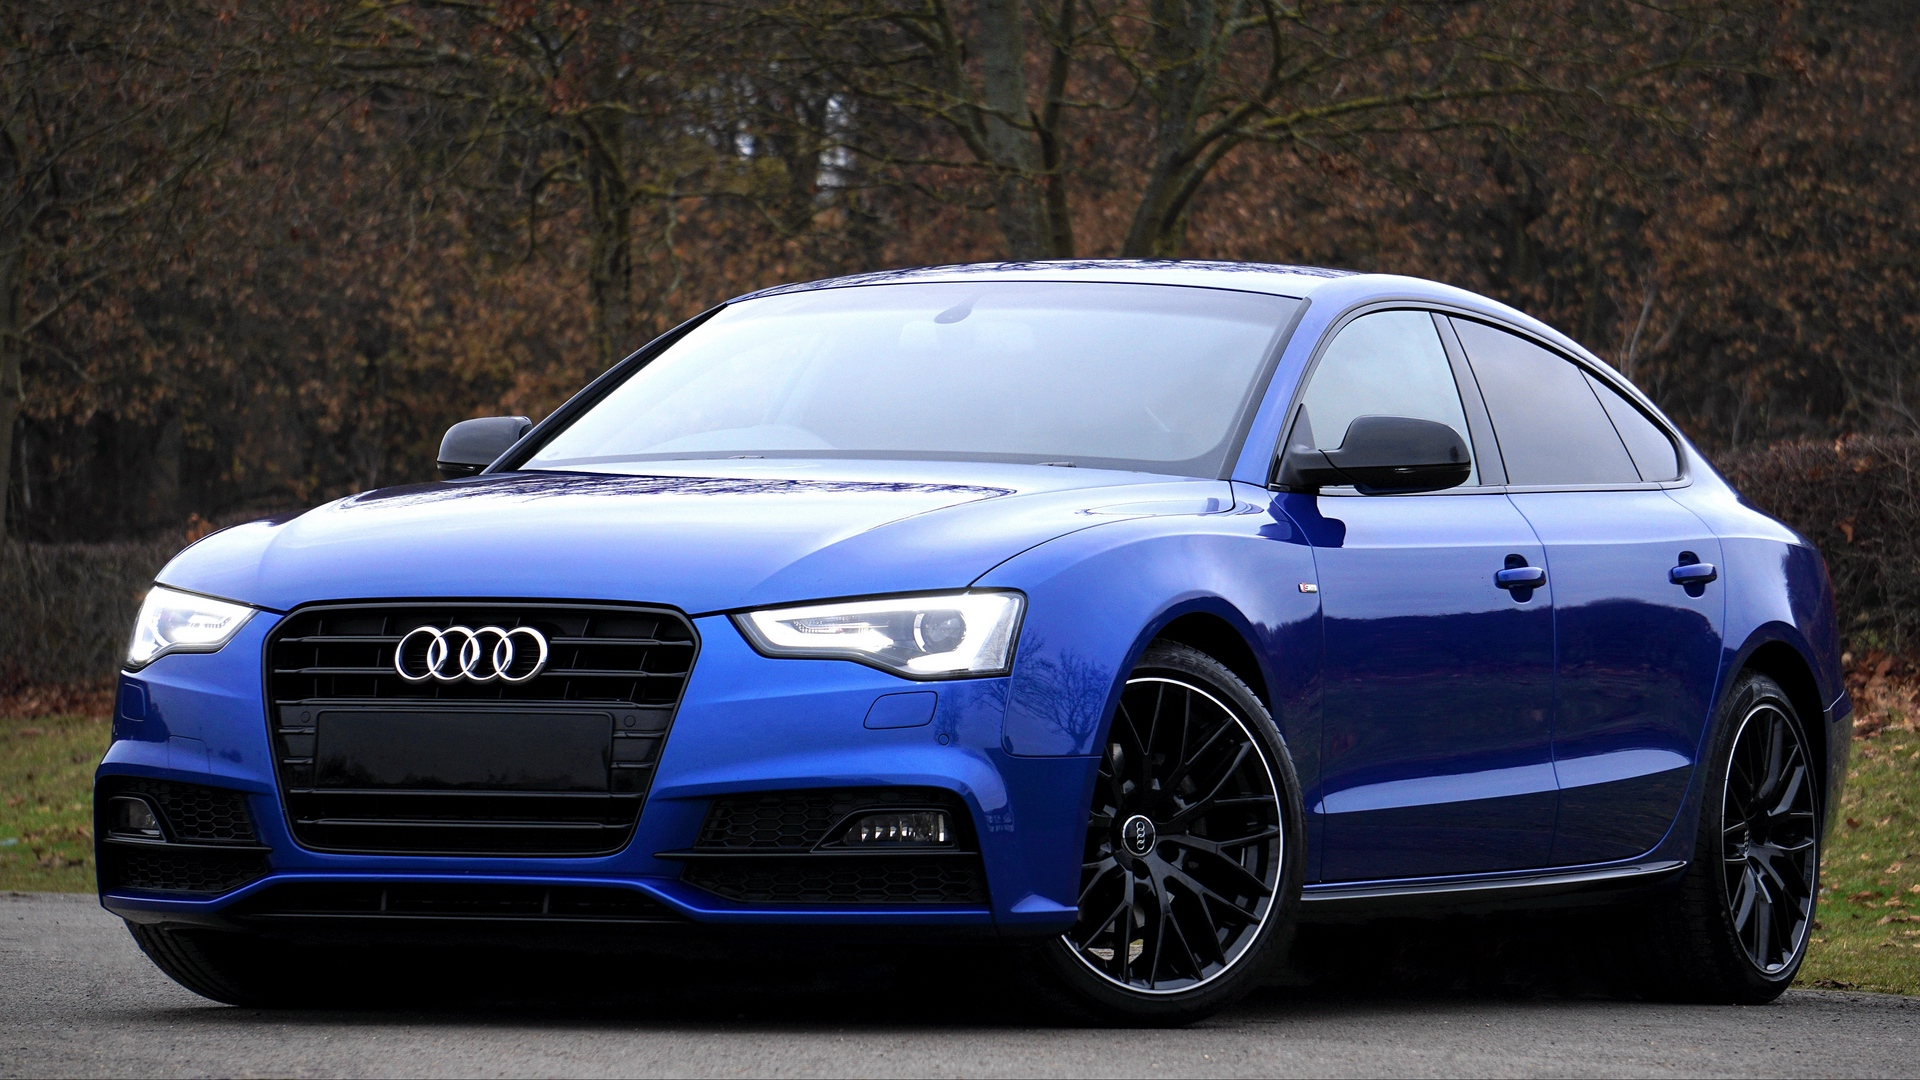 1920x1080 - Audi A5 Wallpapers 2